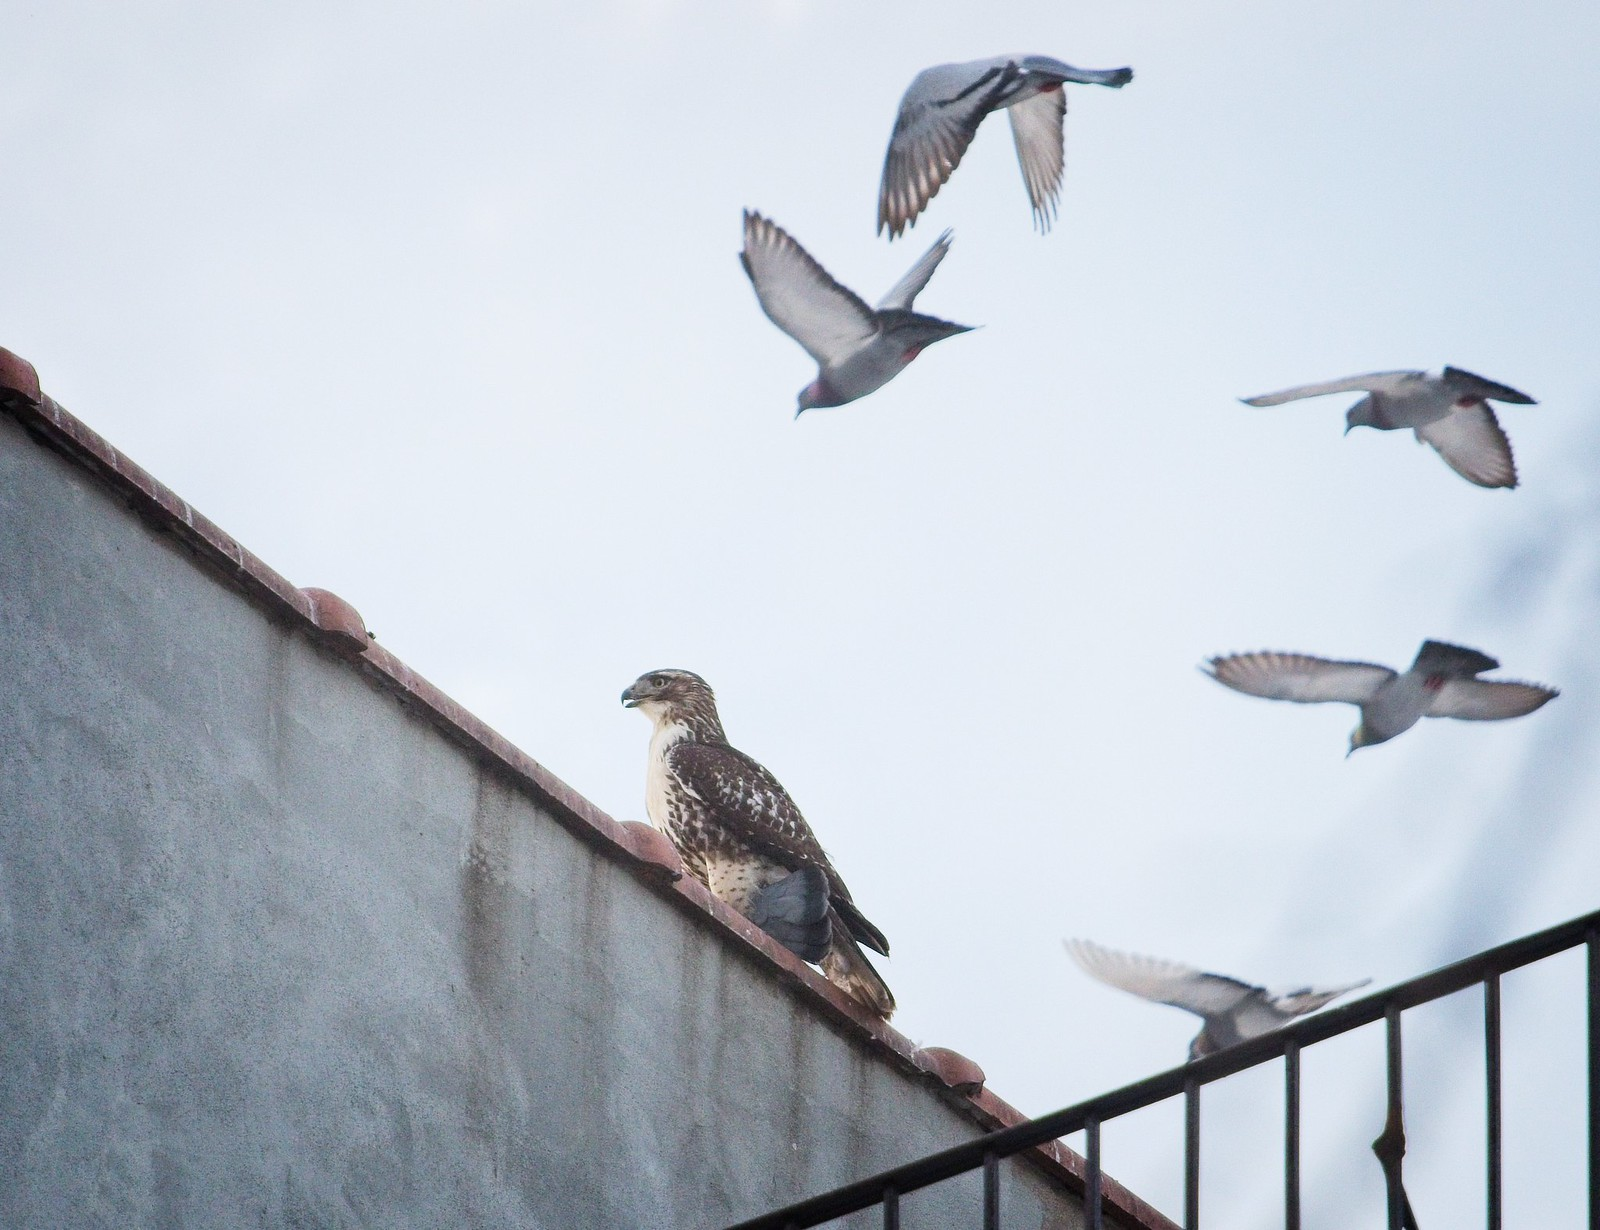 Immature red-tail with pigeons